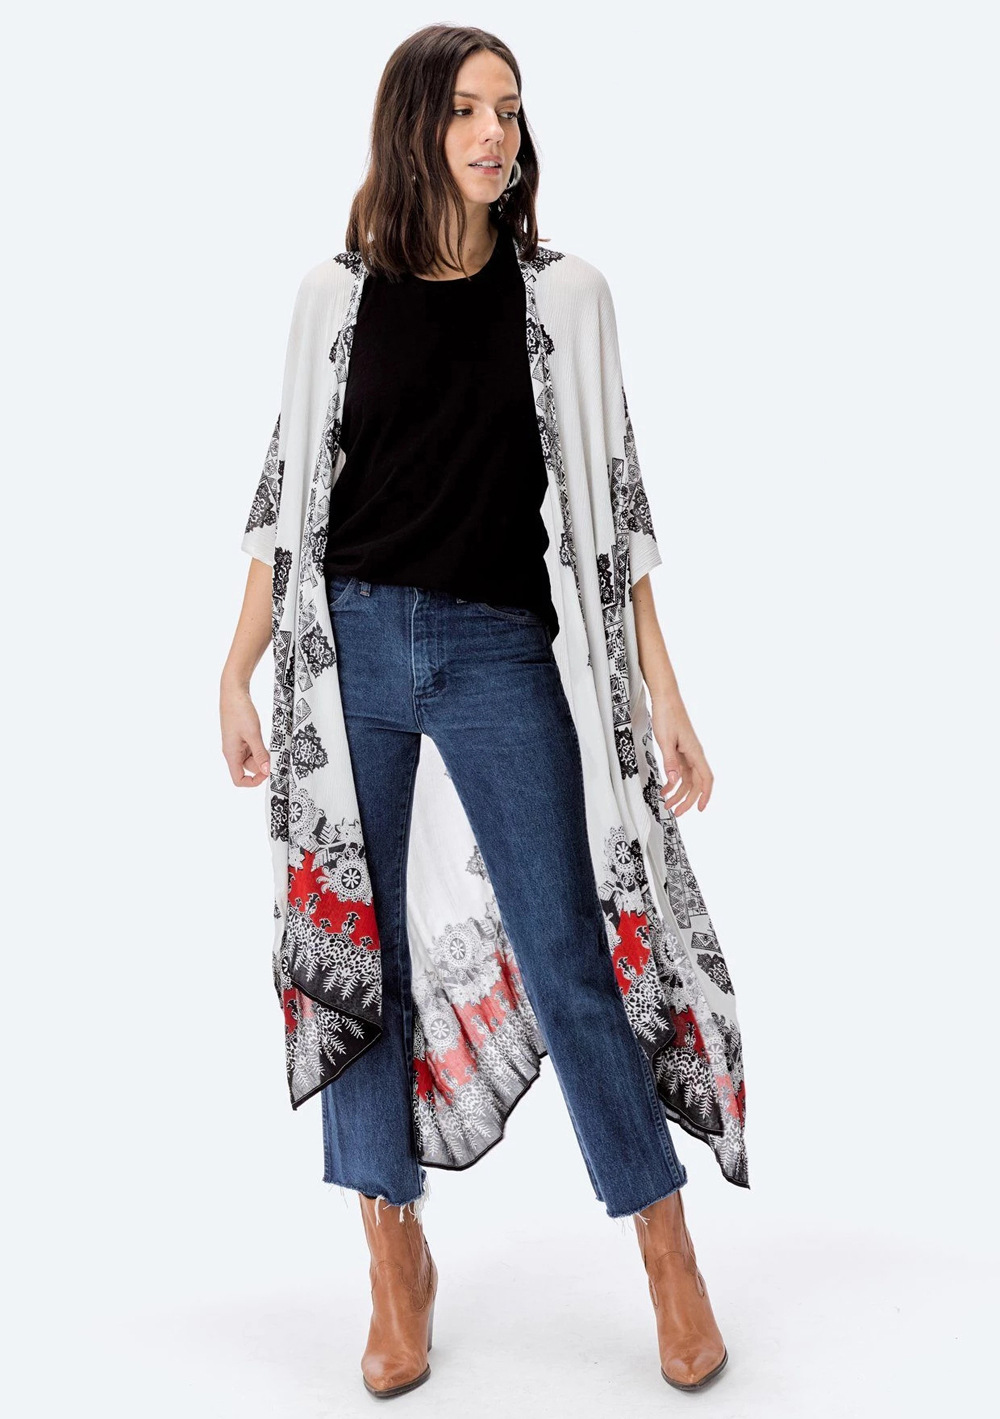 summer women s fashion printed cardigan loose casual beach vacation cover gown NSDF1483